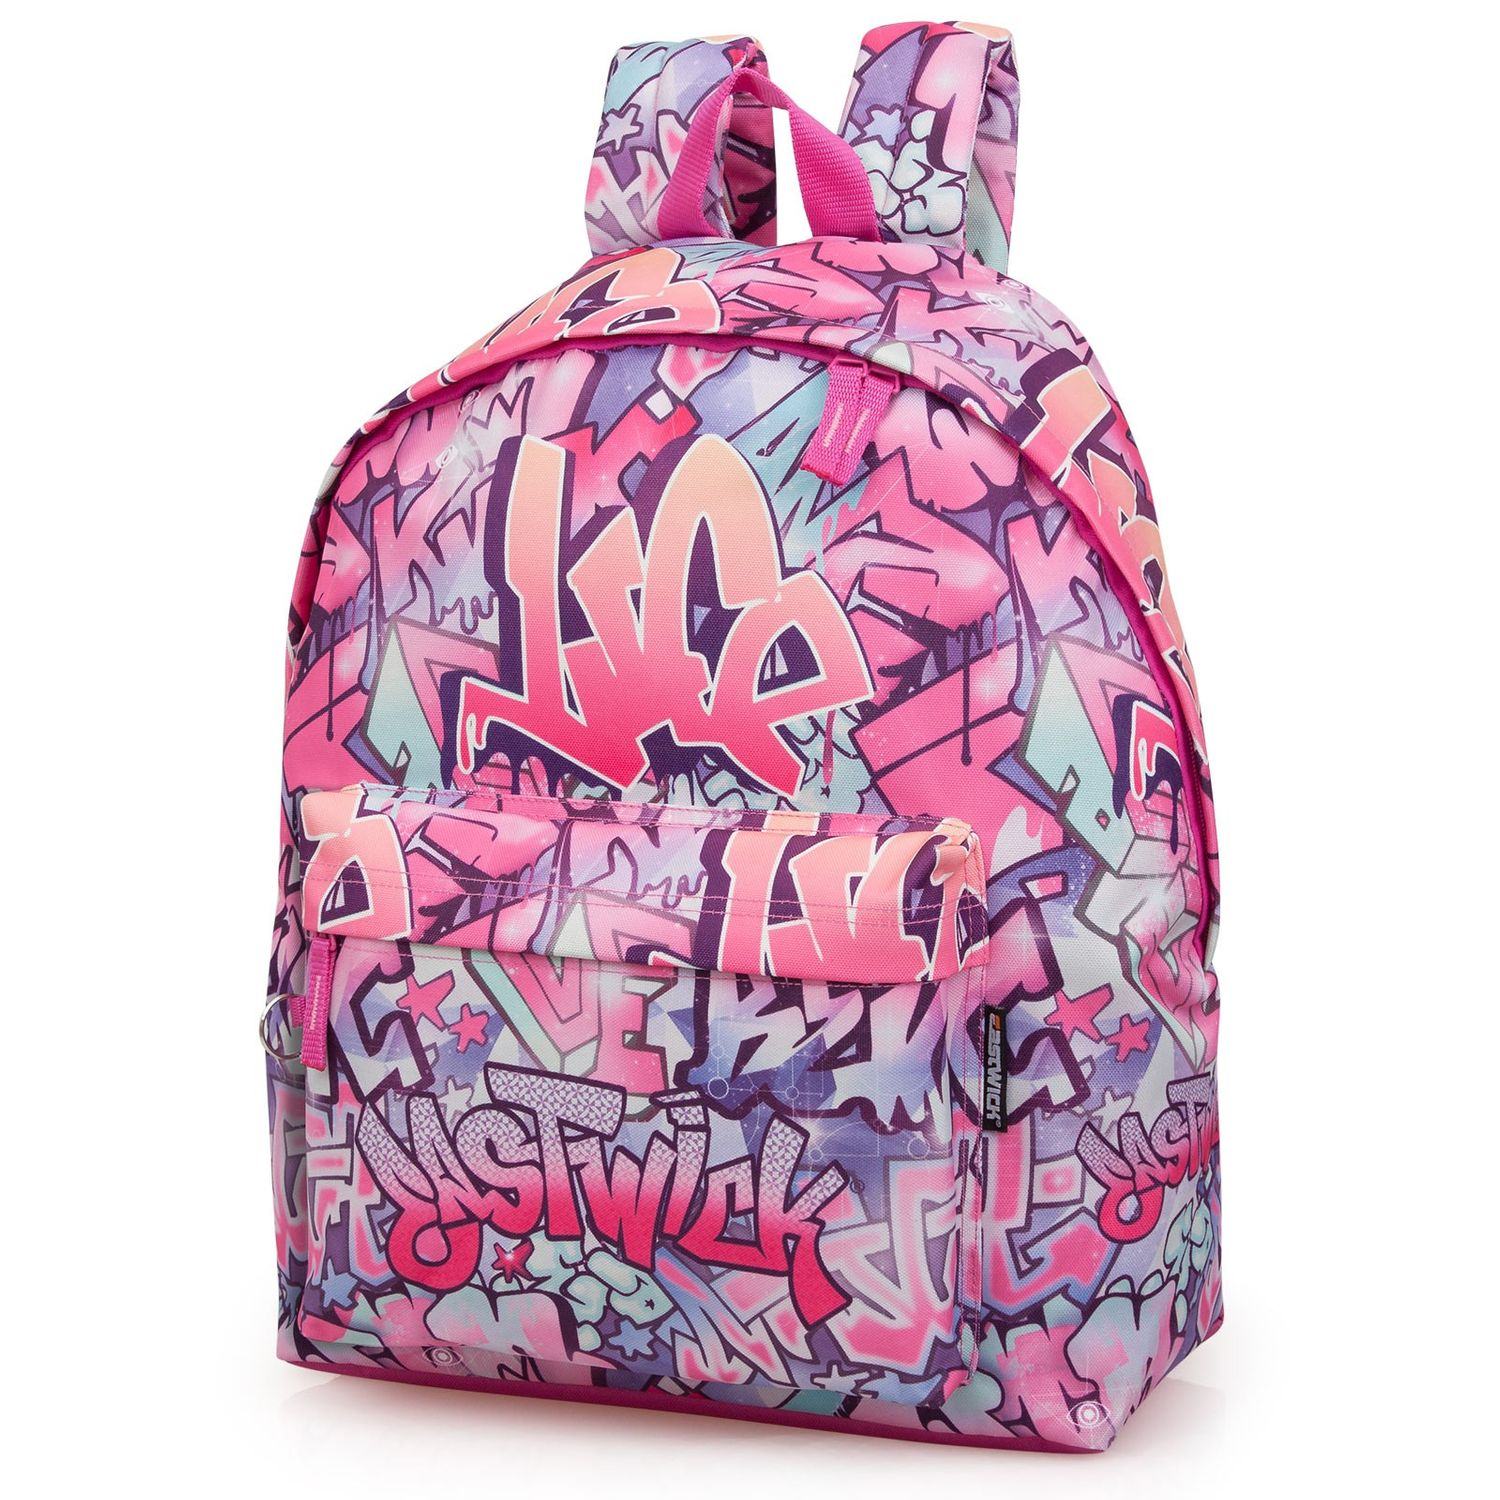 Eastwick Trendy Girls Pink Backpack